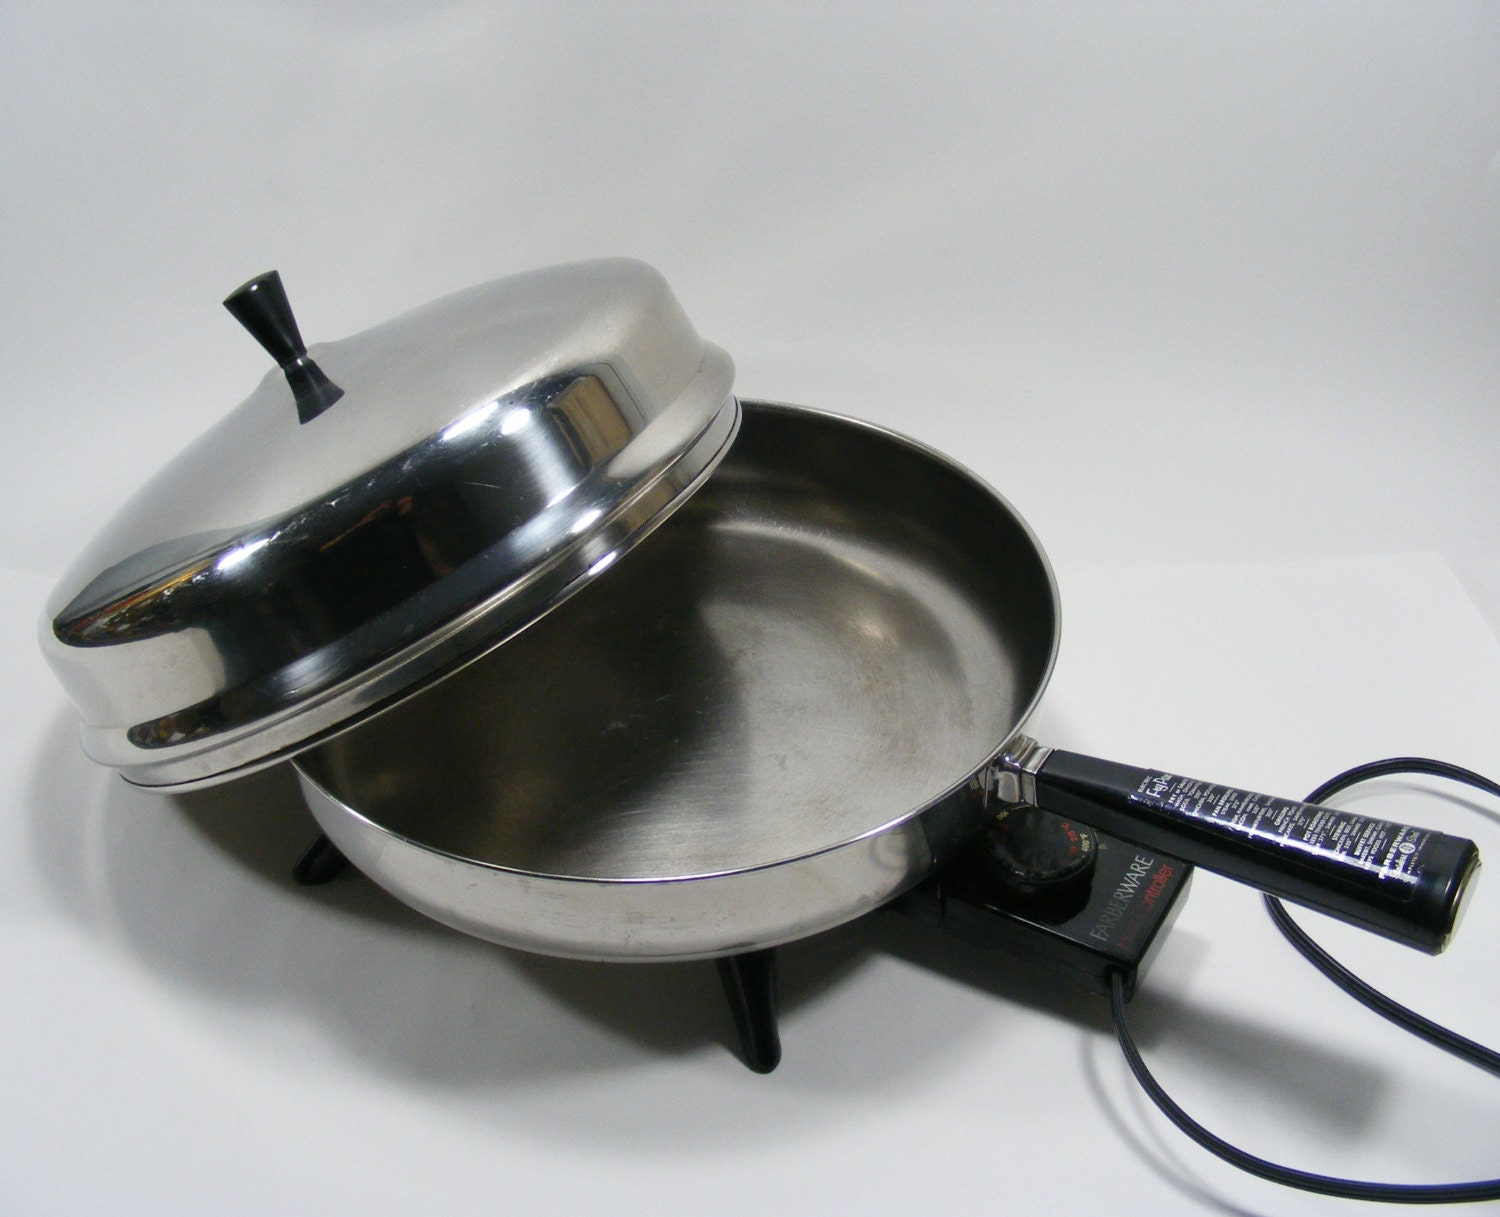 Farberware 310 A Electric Fry Pan 12 Skillet With Domed